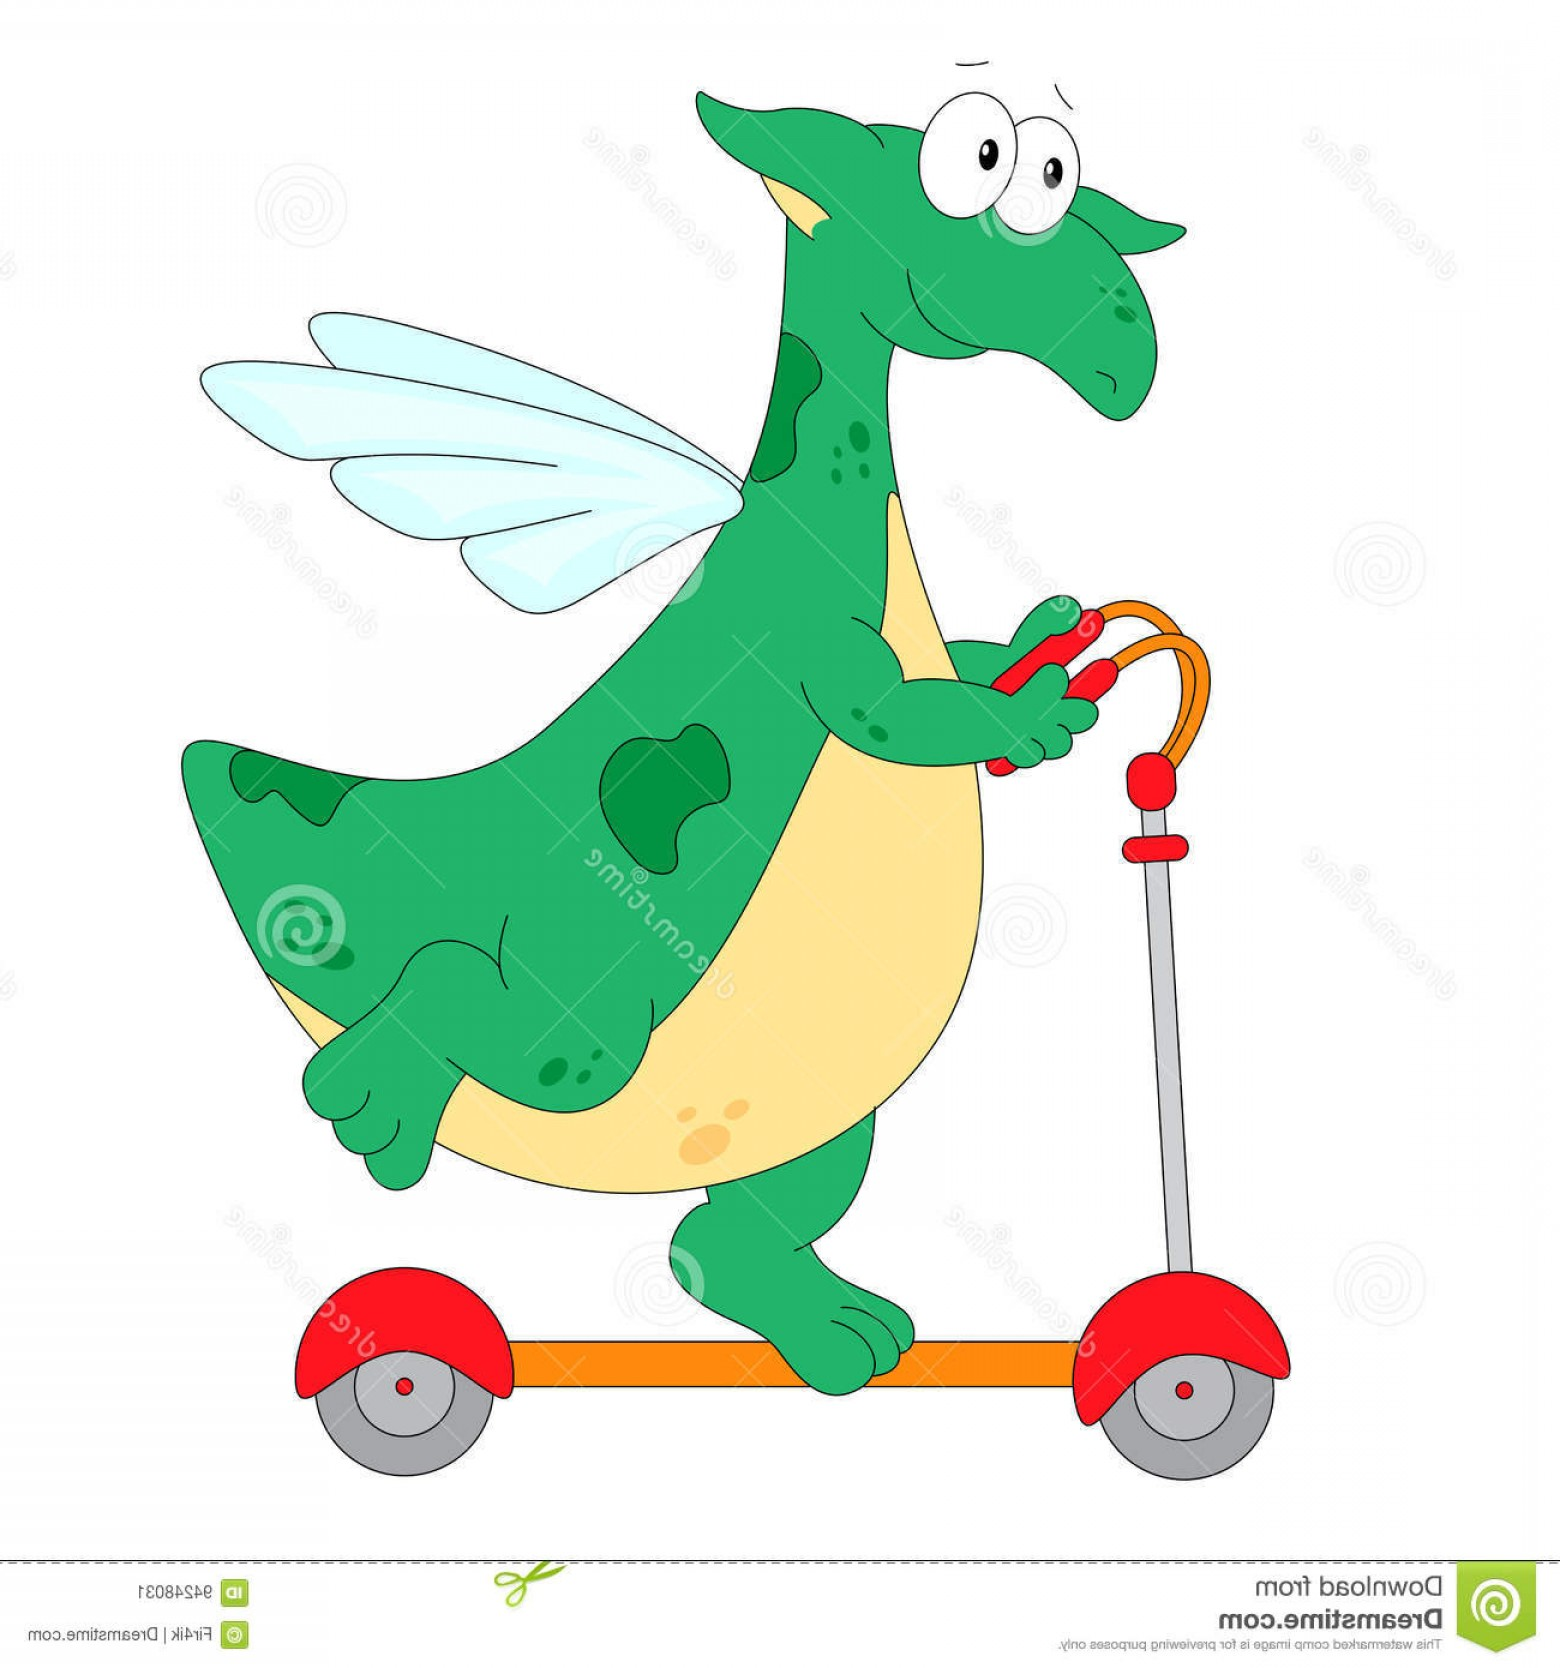 Riding A Dragon Art Vector Clip Art: Stock Illustration Happy Green Dragon Riding Kick Scooter Vector Flat Design Illustration Image